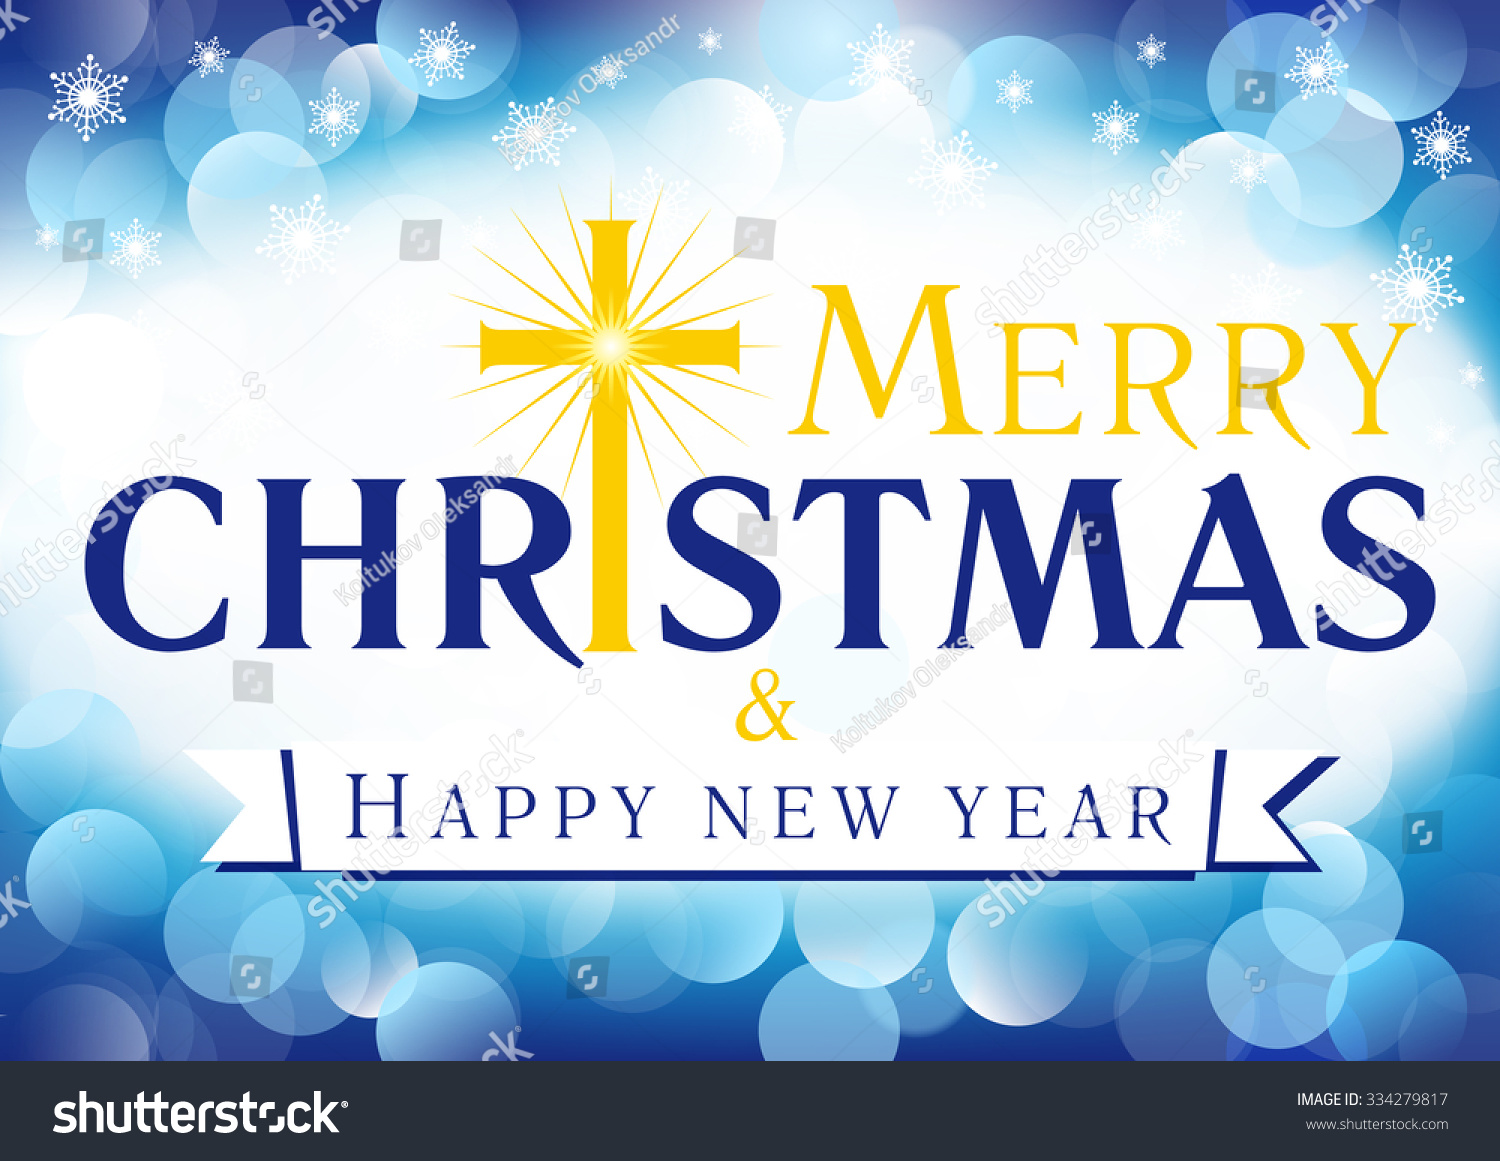 Merry Christmas Happy New Year Greetings Stock Vector (Royalty Free ...